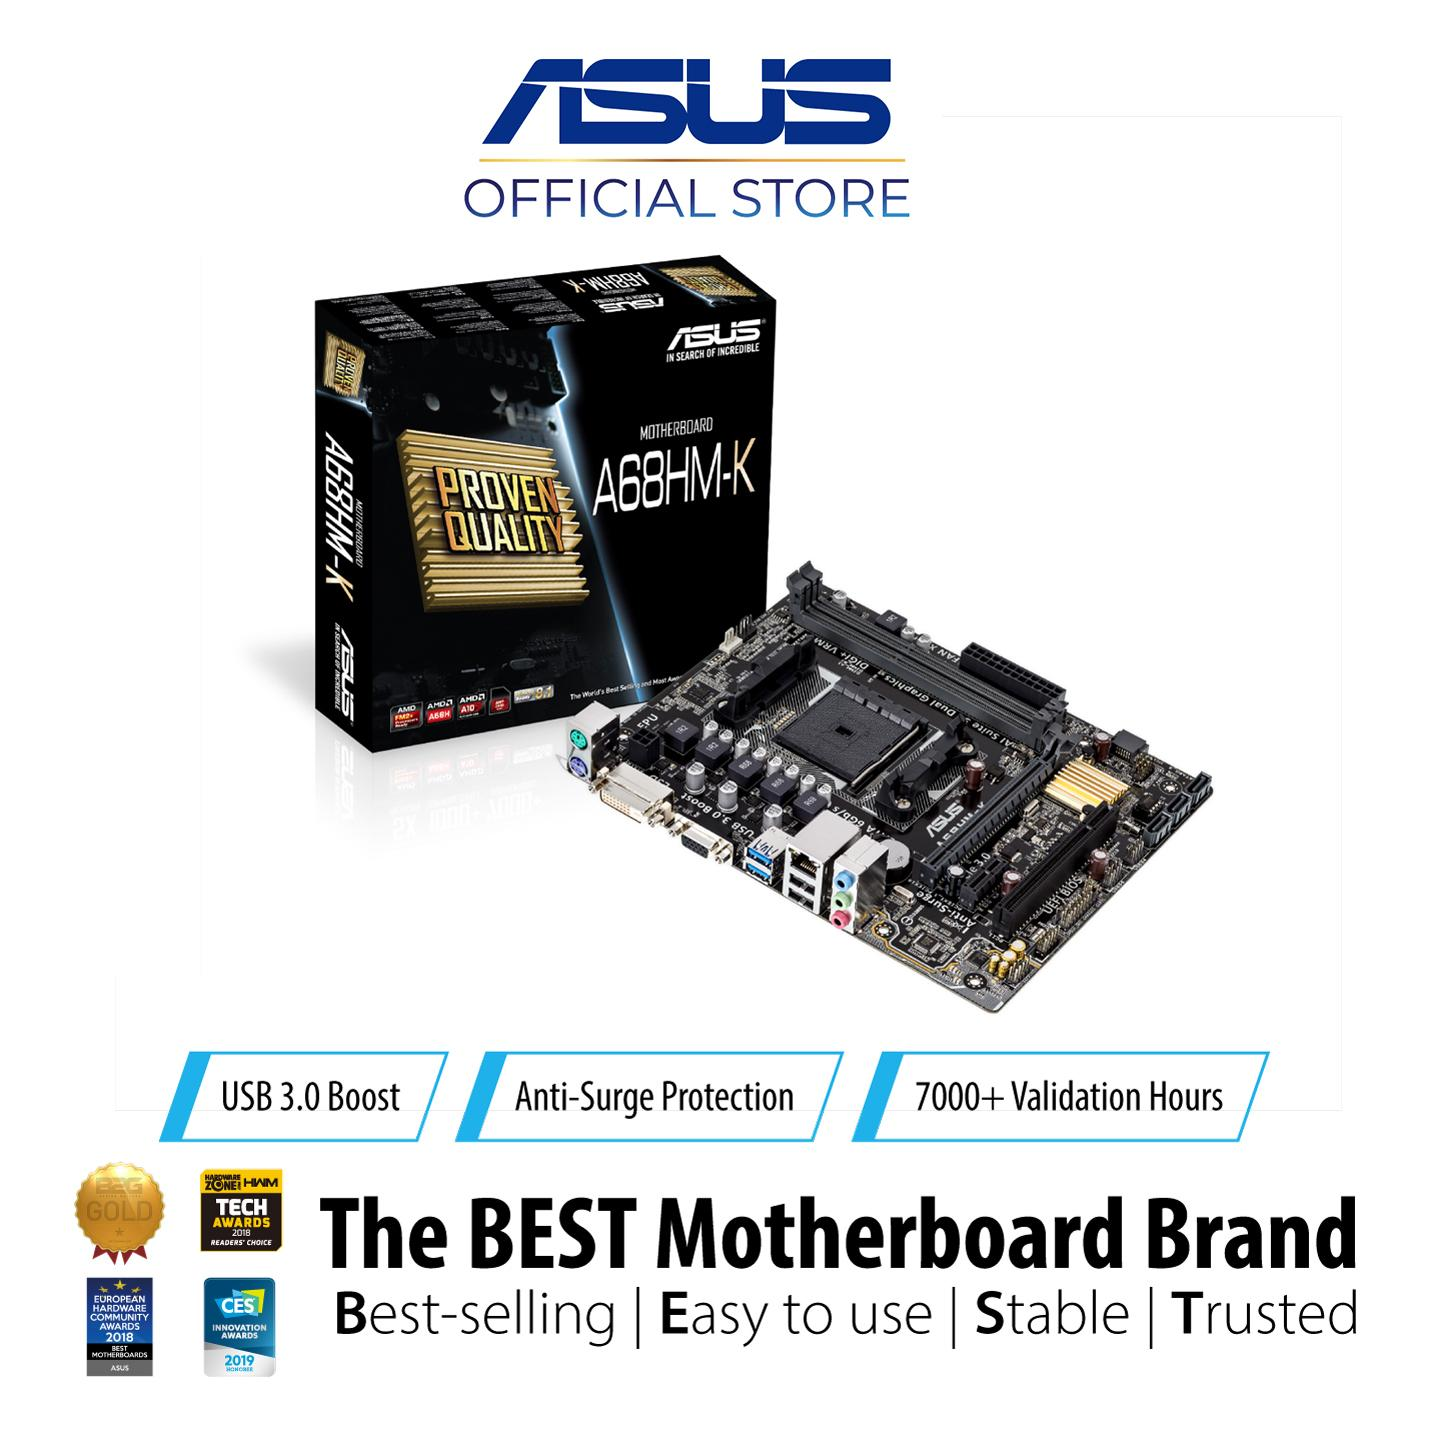 ASUS A68HM-K FM2+ Socketed motherboard with proven quality, high-clarity  audio and the new UEFI BIOS on the A68H Chipset